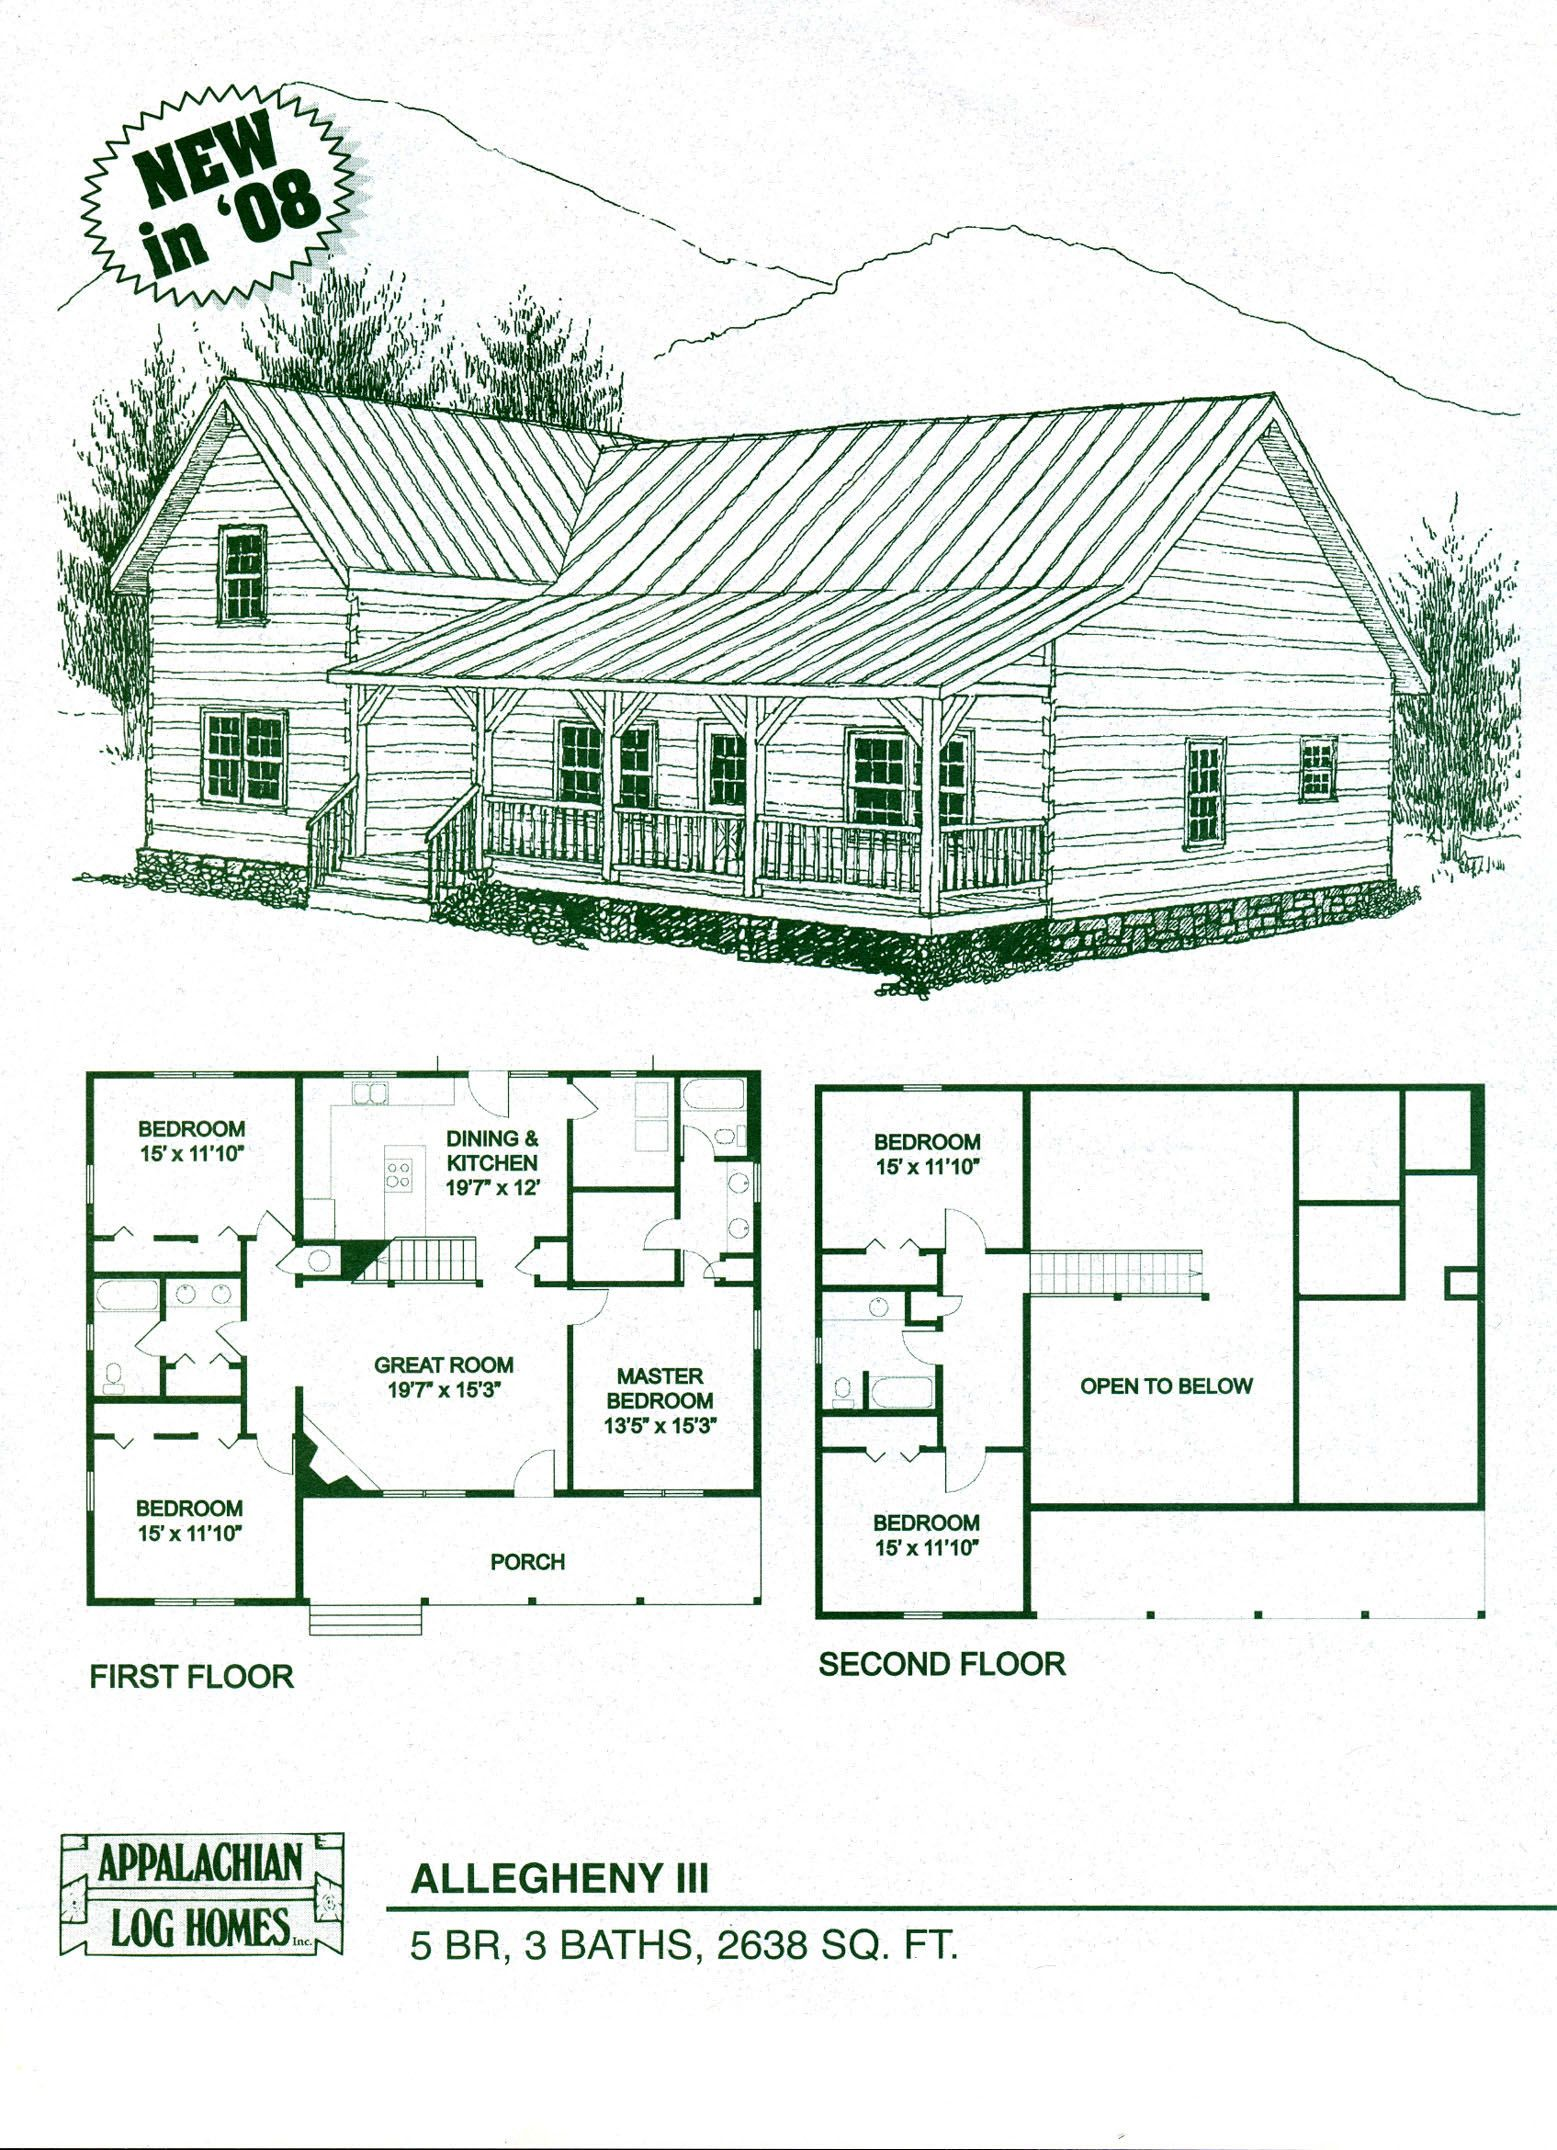 Log home floor plans log cabin kits appalachian log for House plan kits